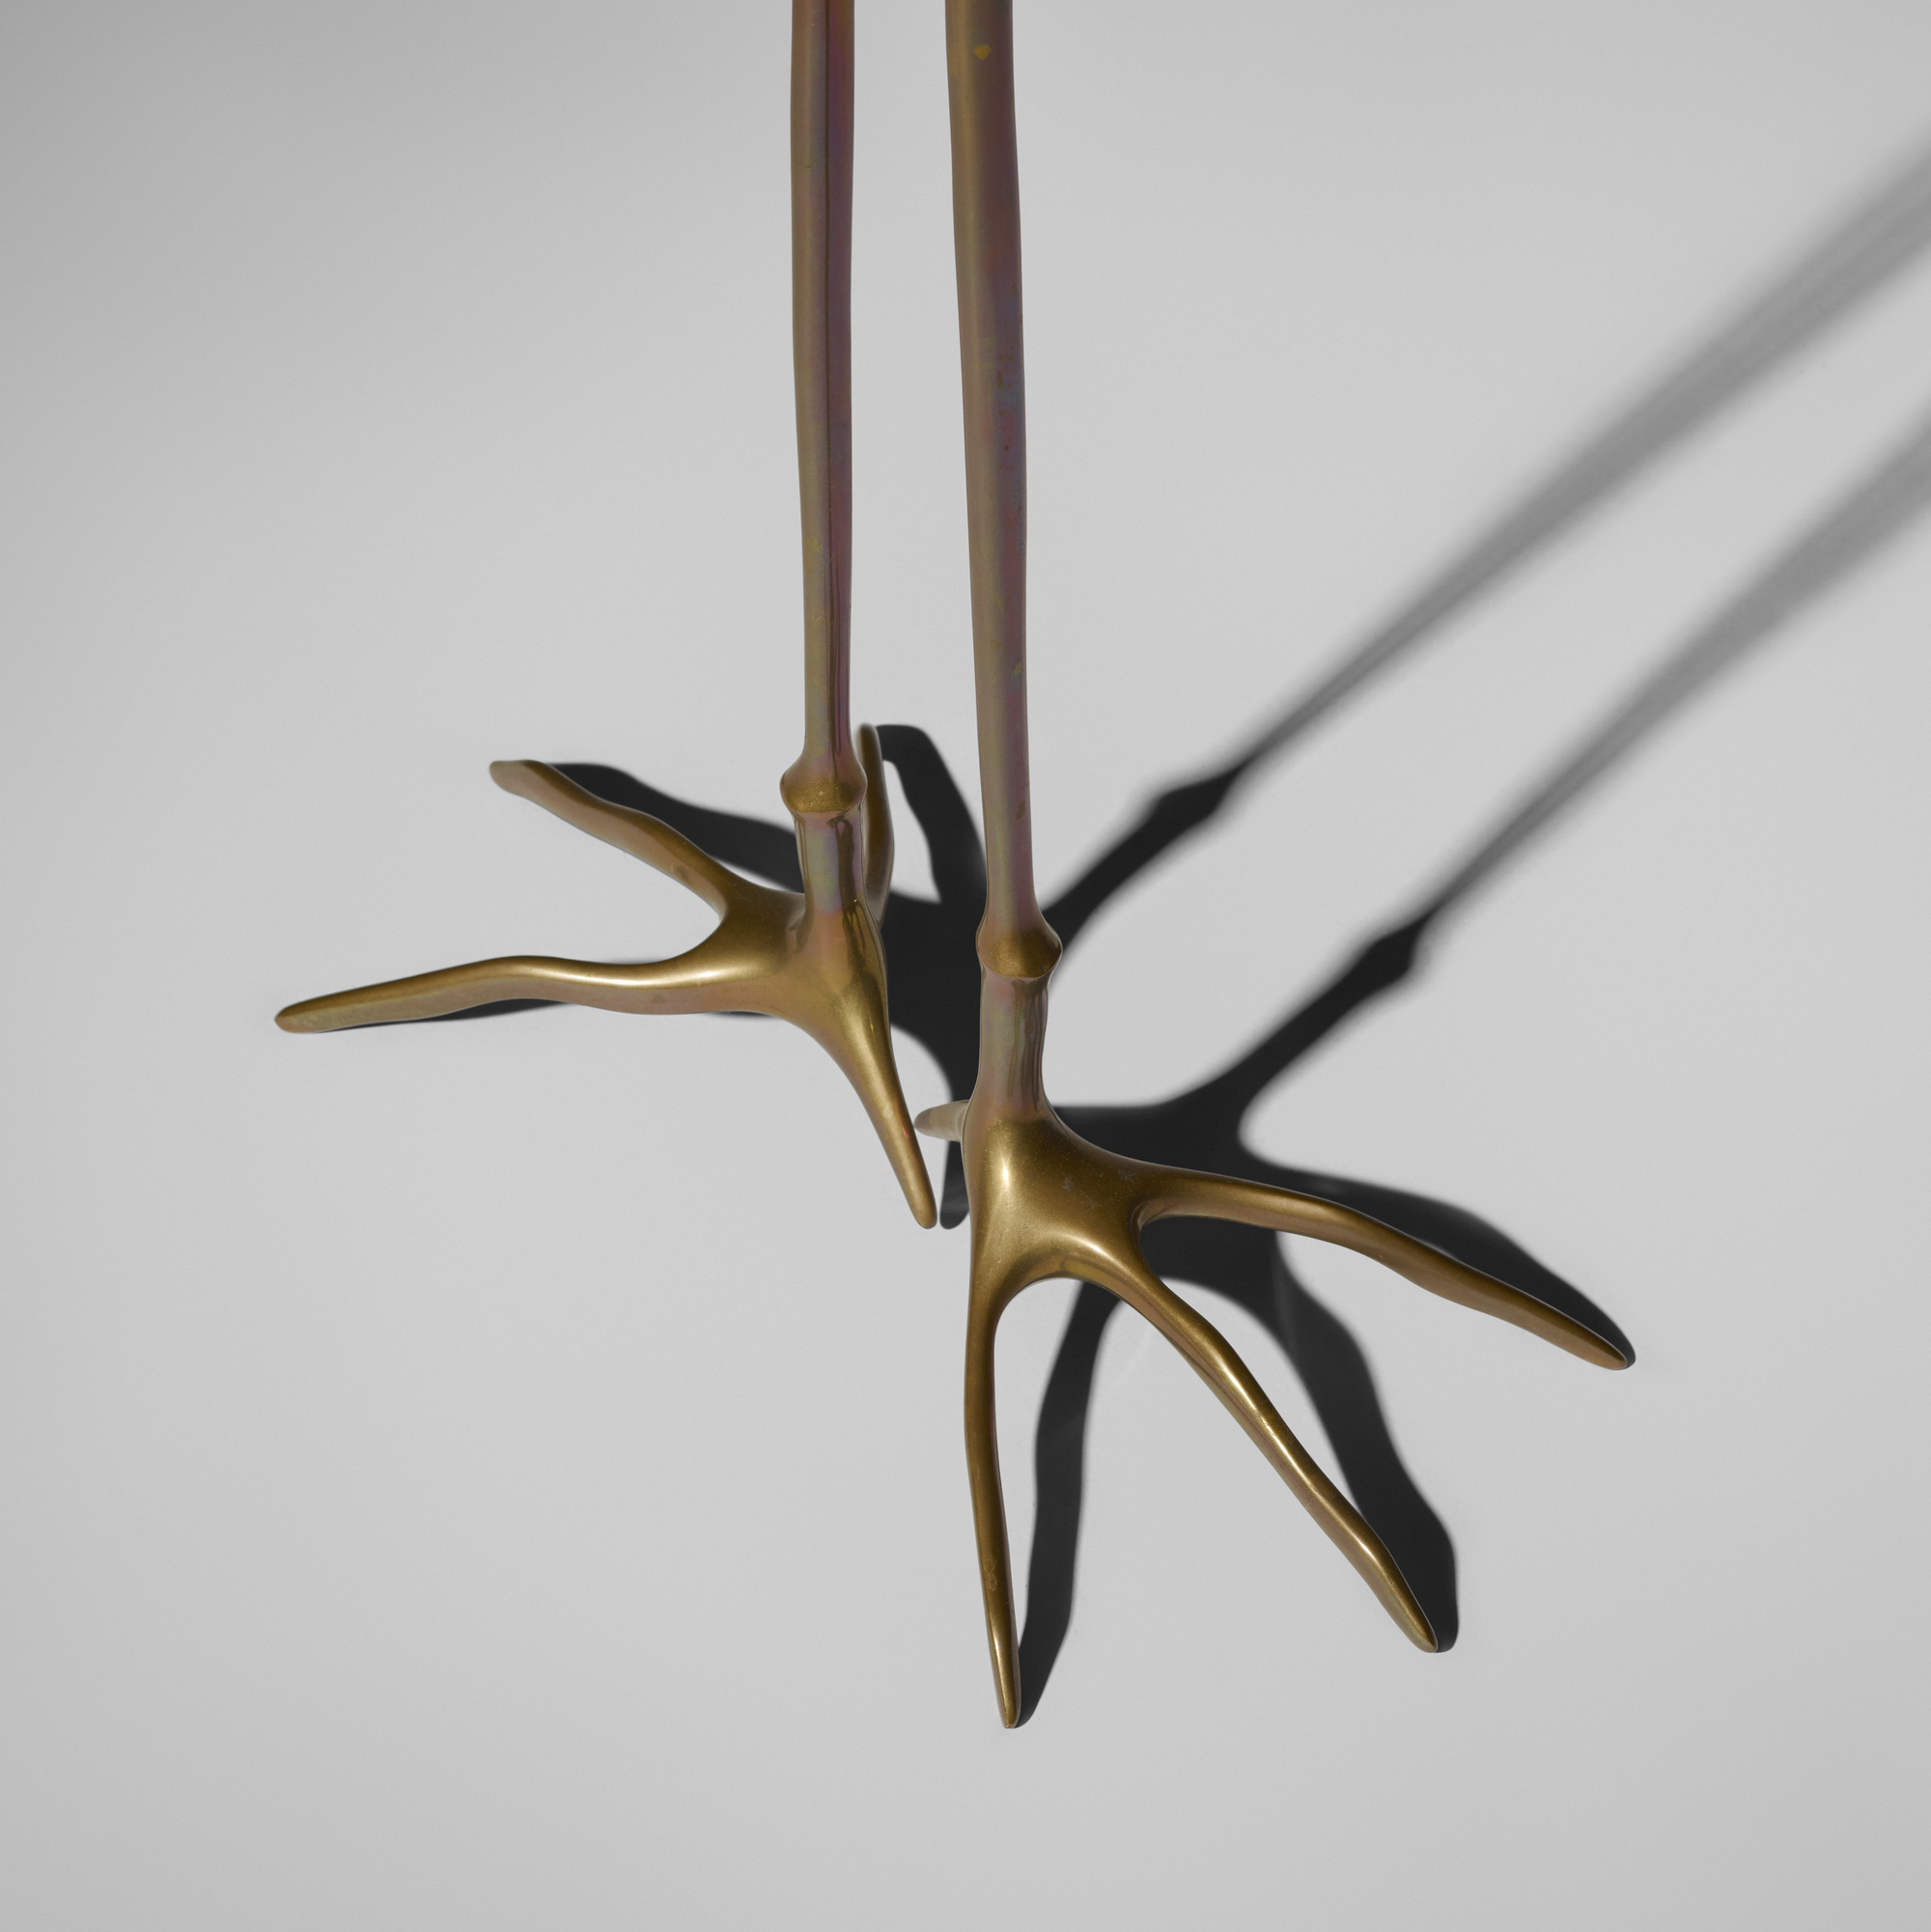 293: Meret Oppenheim / Traccia table from the Ultramobile collection (3 of 3)